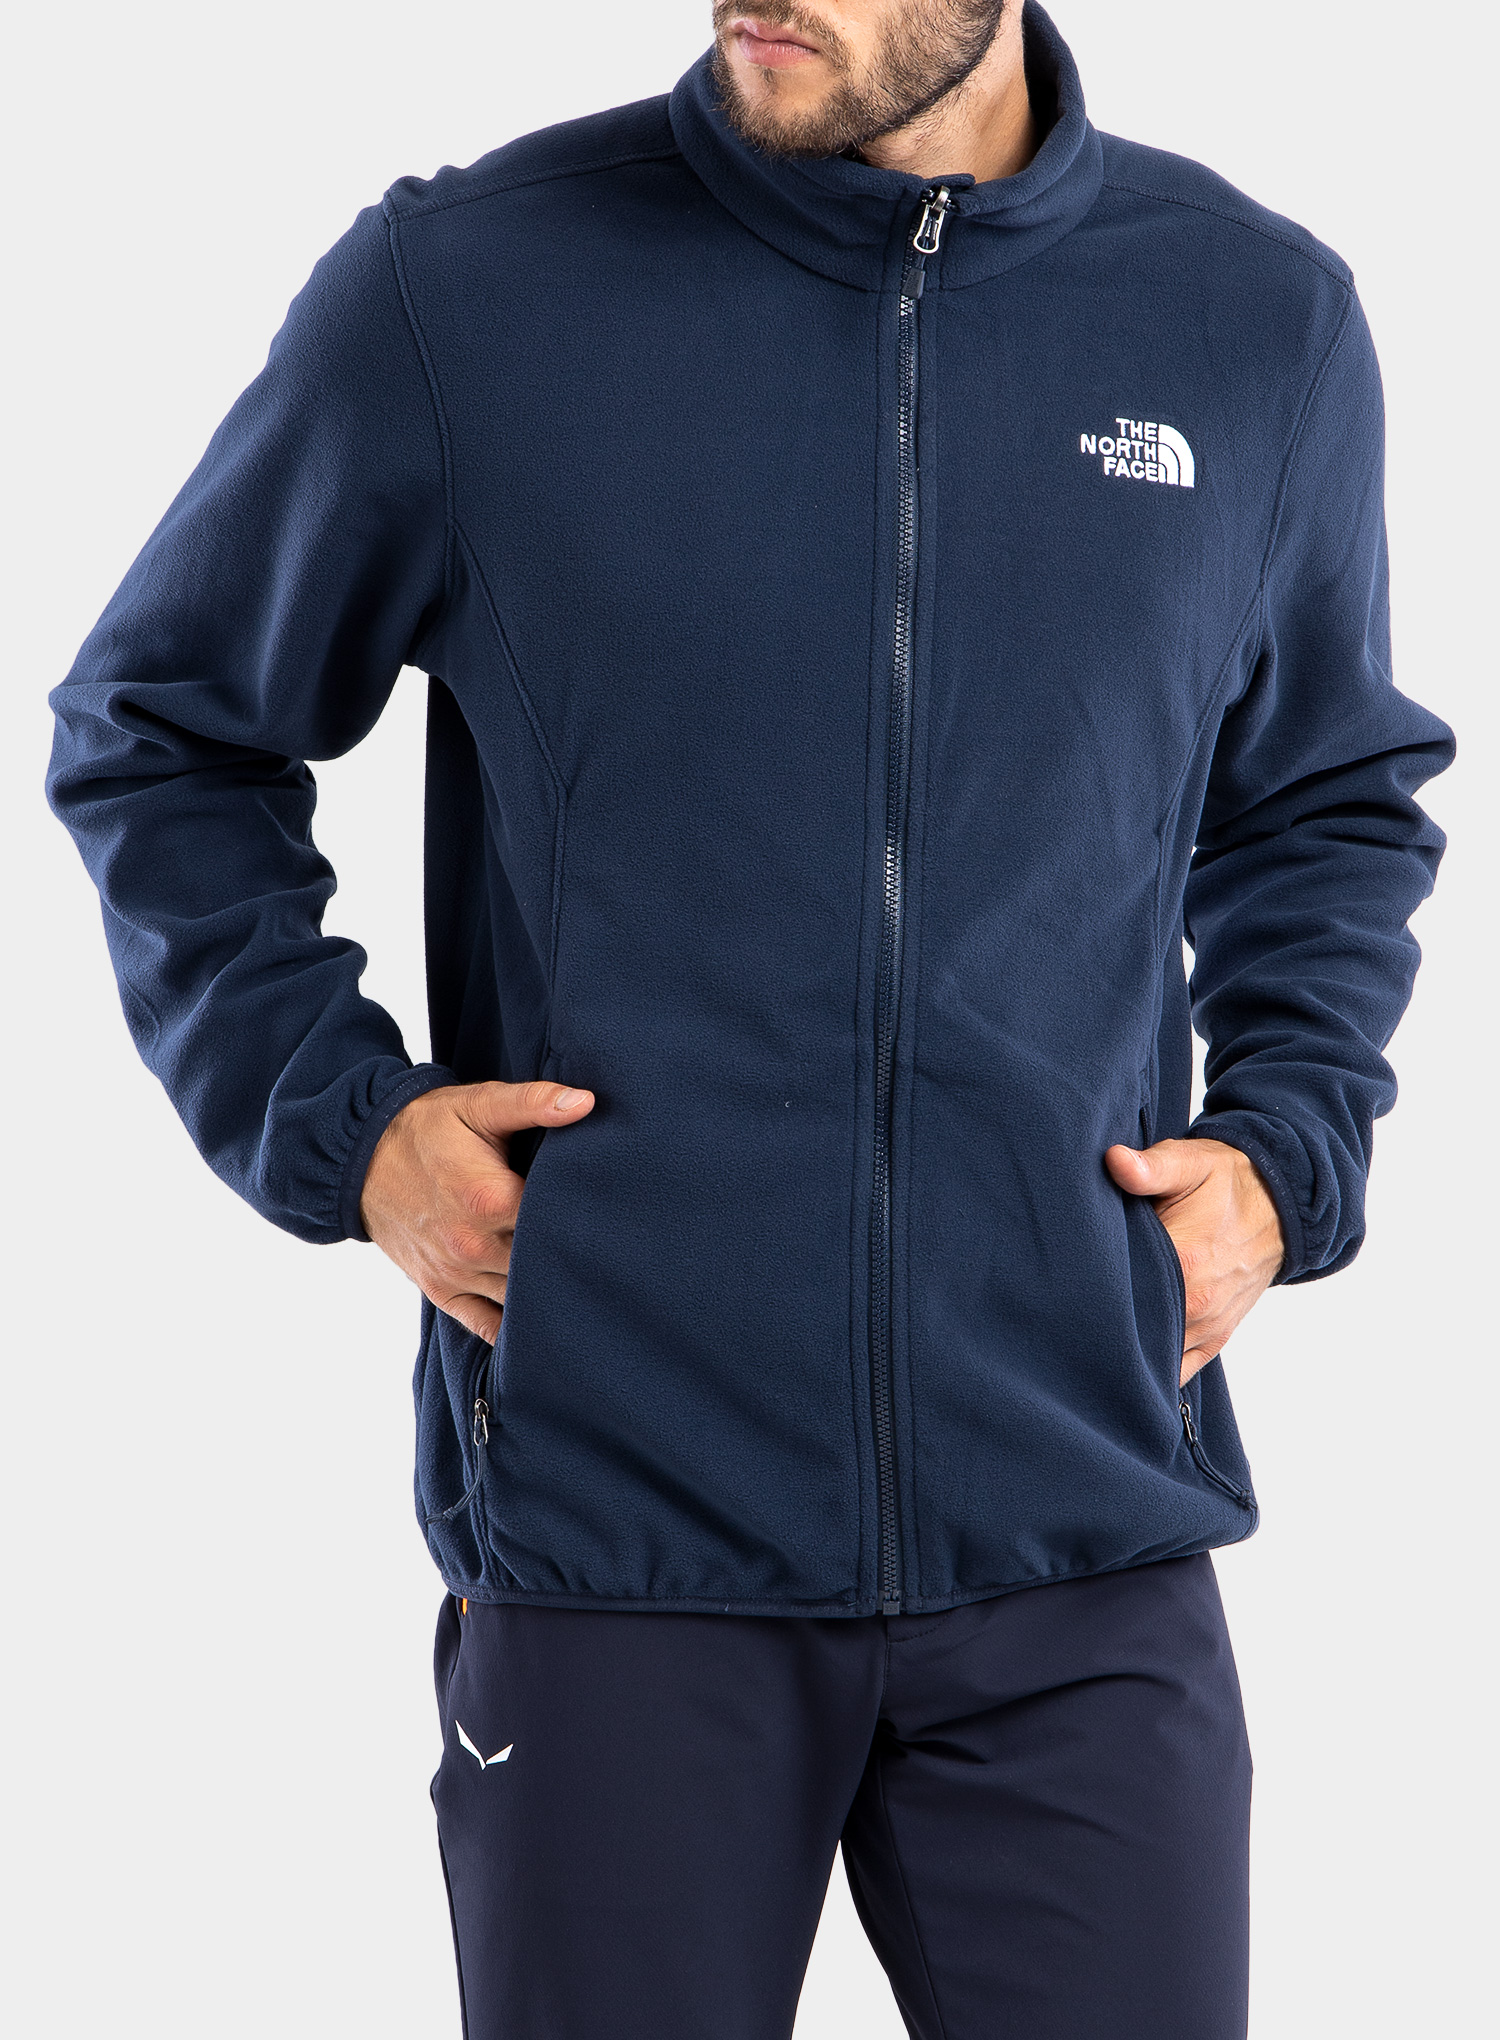 Kurtka The North Face Evolution II Triclimate - blue/navy - zdjęcie nr. 2